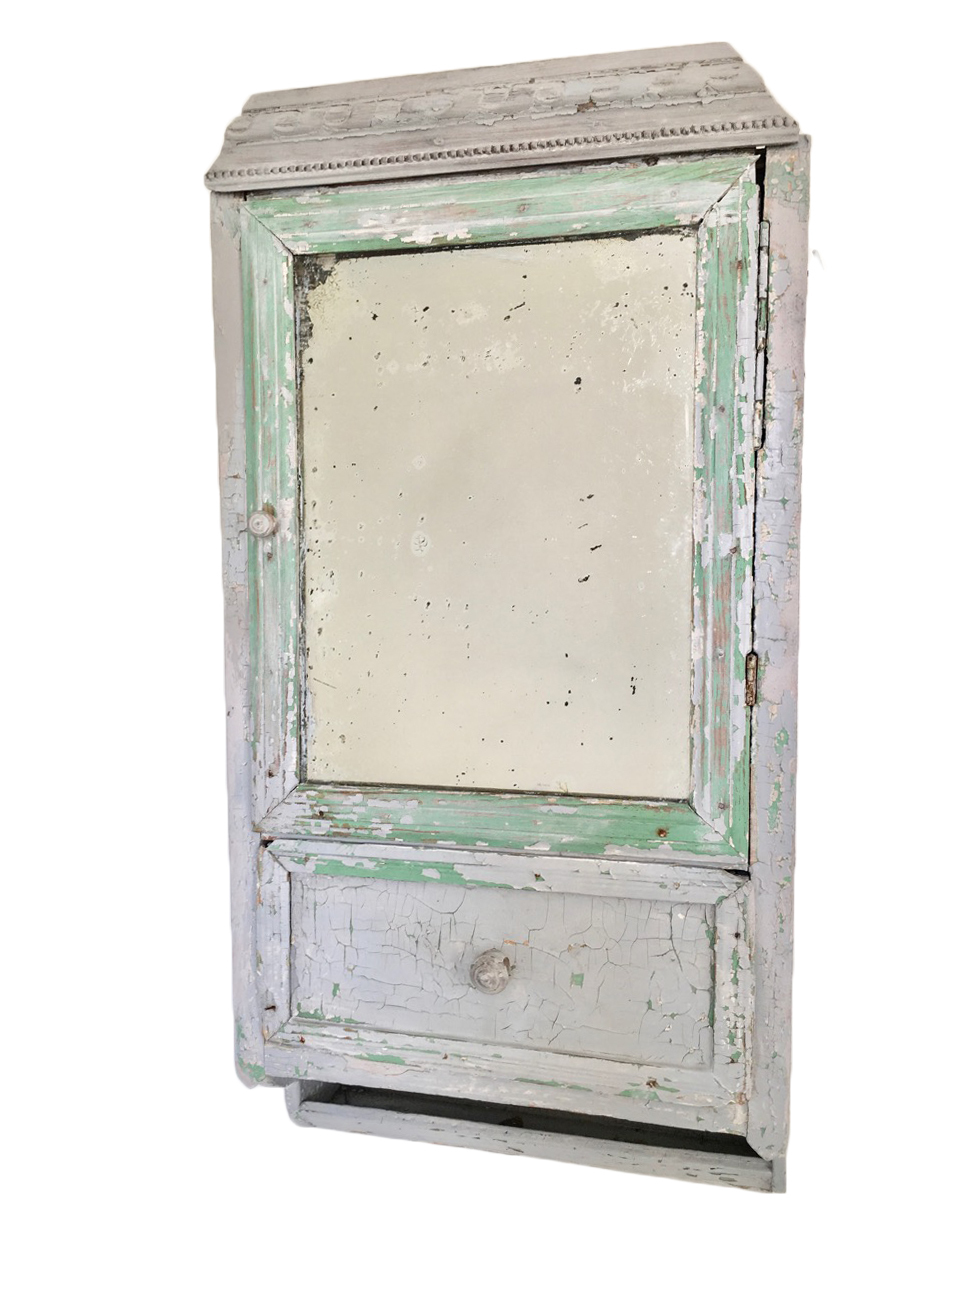 Vintage Wooden Bathroom Medicine Cabinet With Foxed Mirror And Distressed Paint Finish Unknown Vinterior